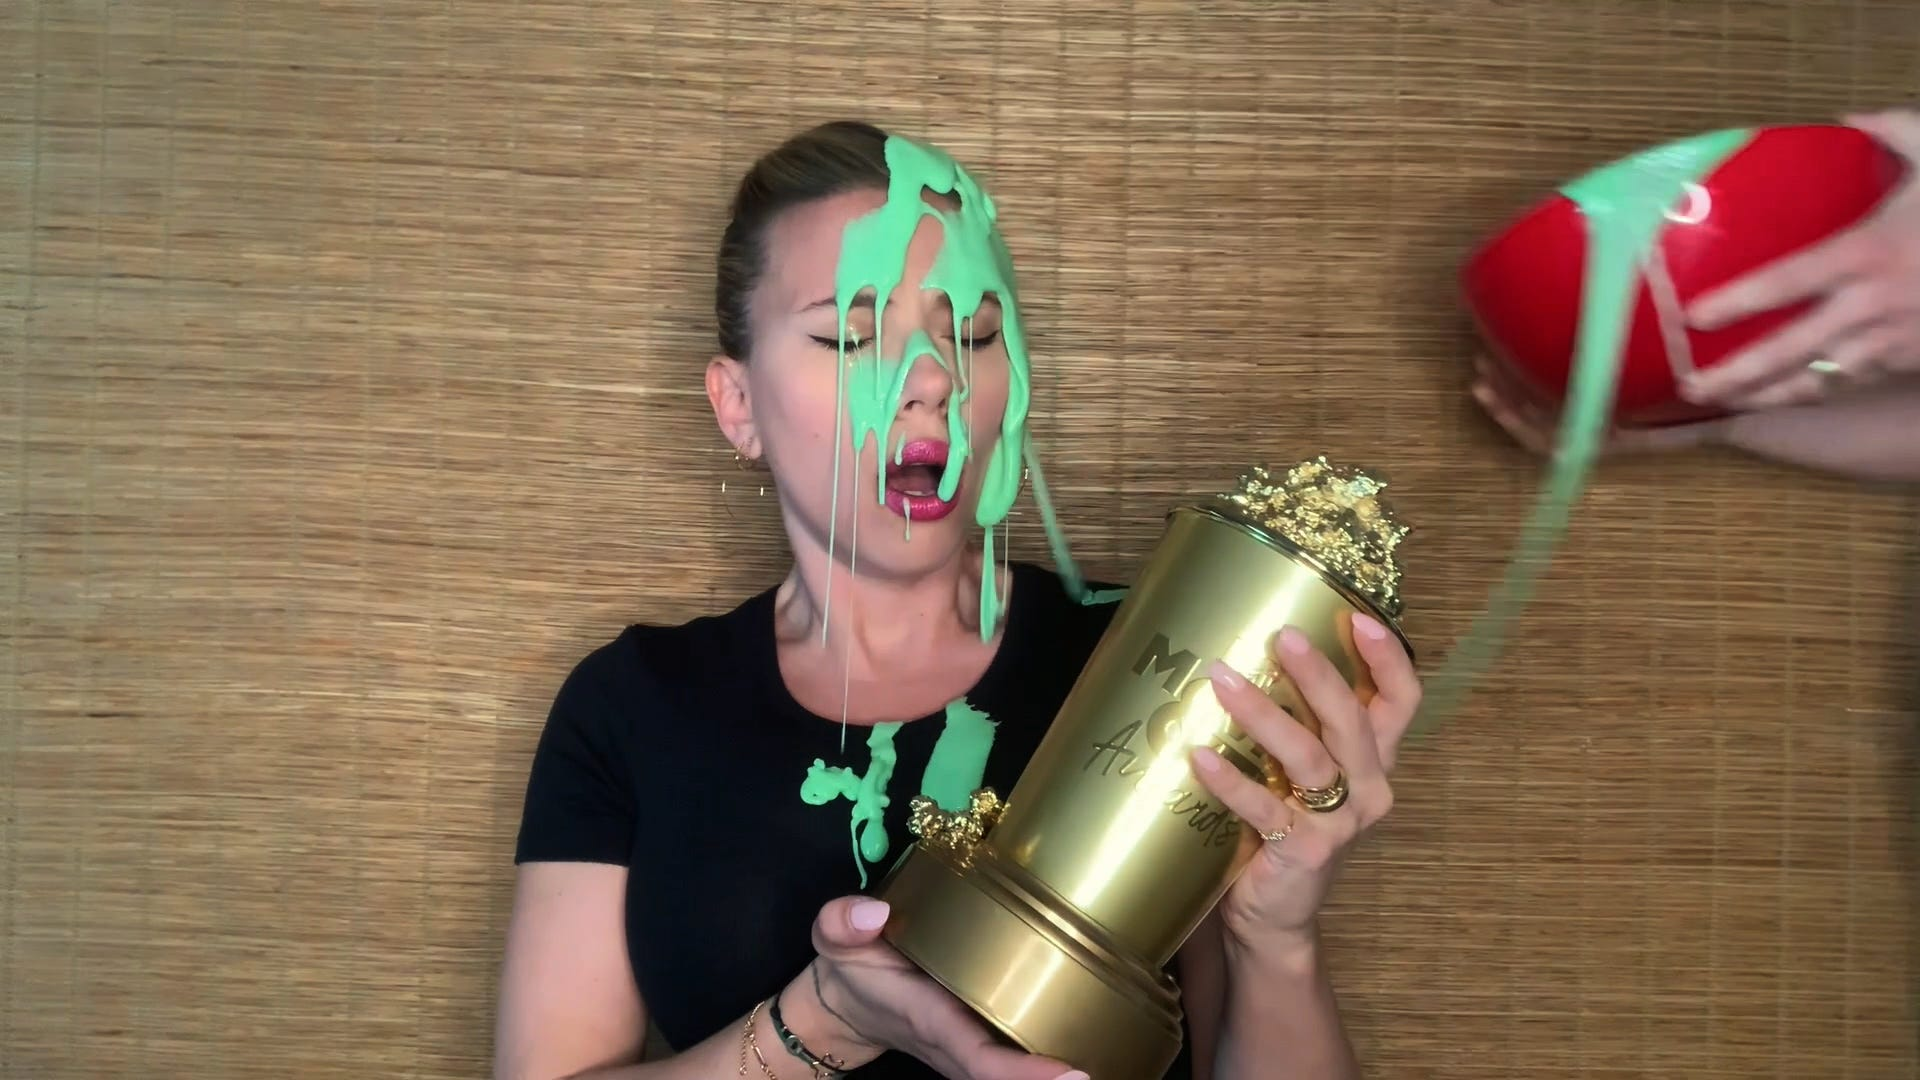 Scarlett Johansson gets slimed during MTV Awards by Colin Jost while accepting her Generation Award